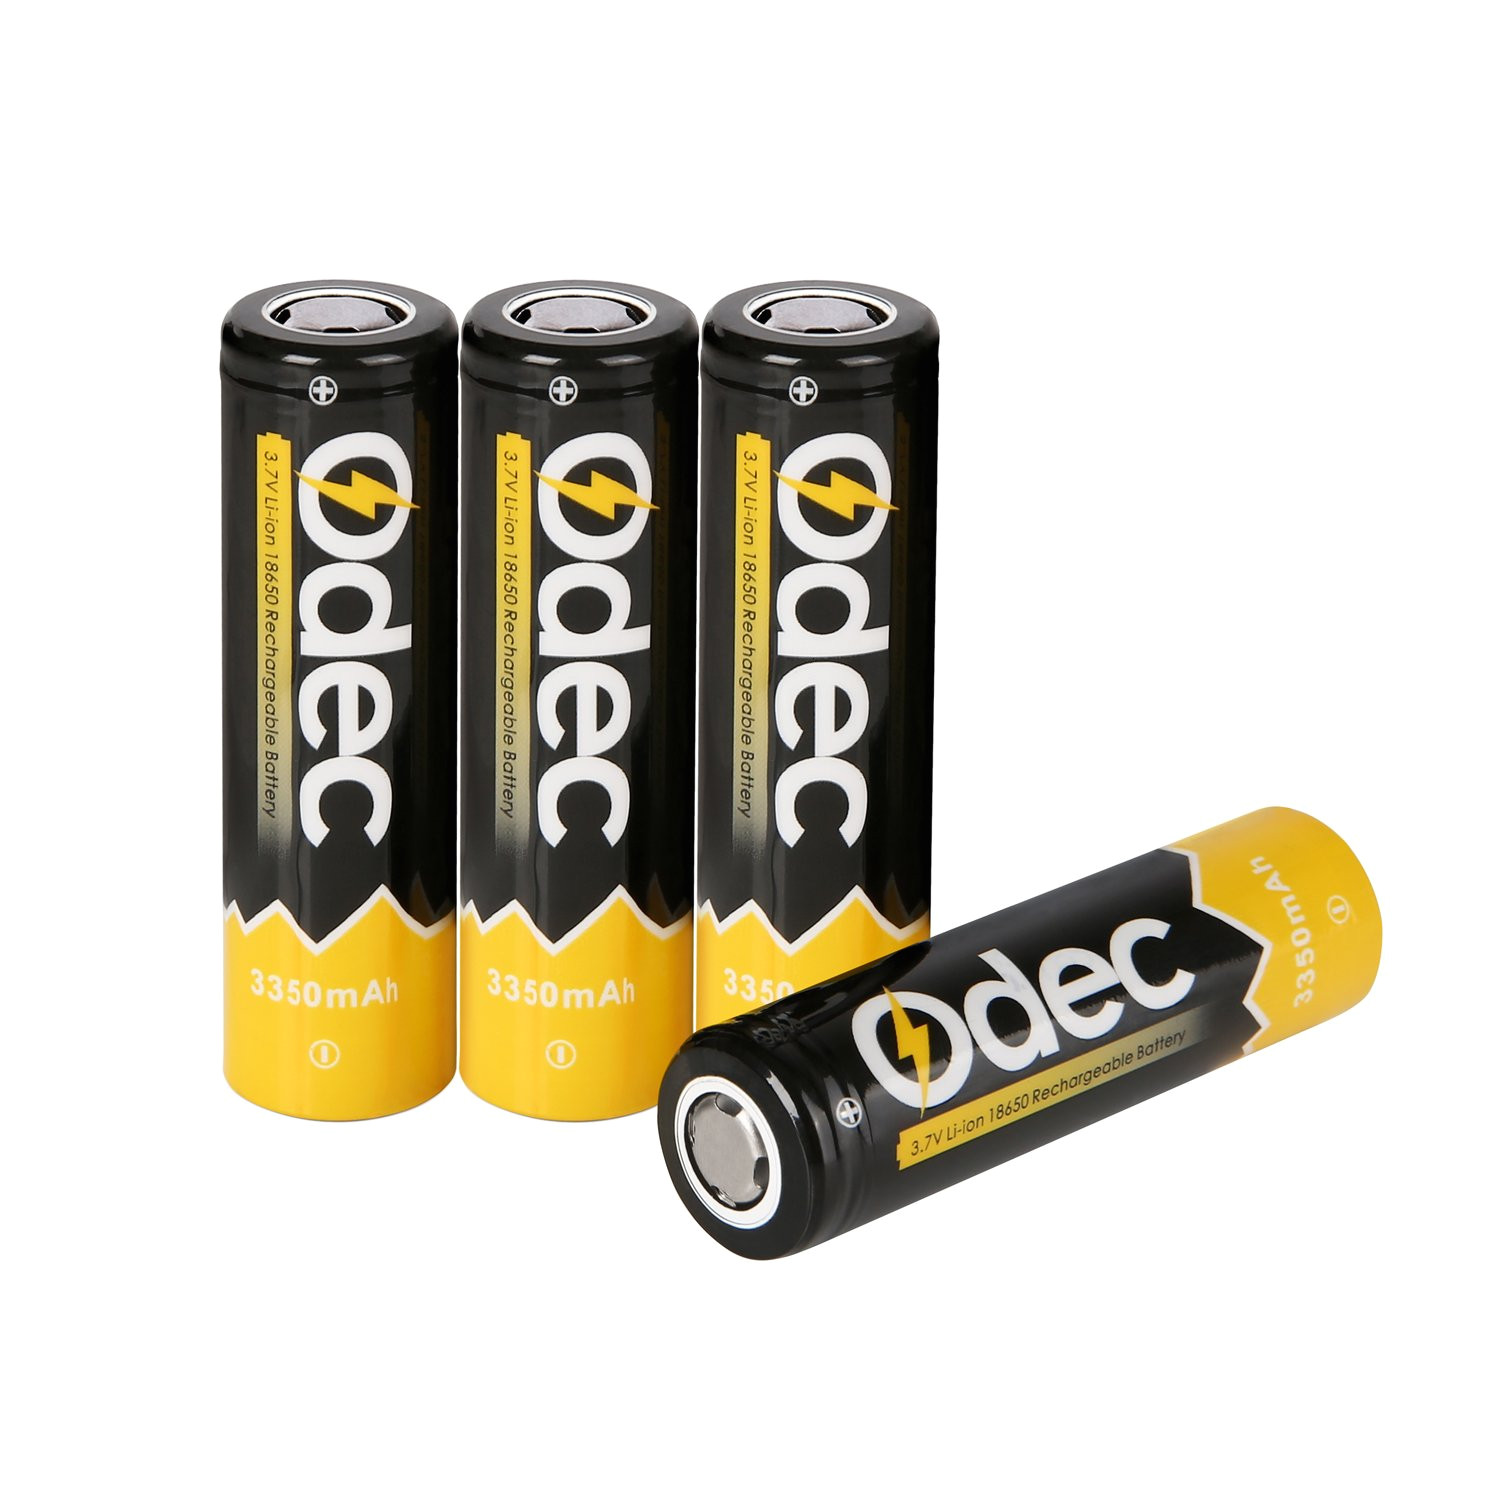 amazon com odec 18650 battery 3350mah li ion rechargeable battery flat top with battery case 4 pack health personal care